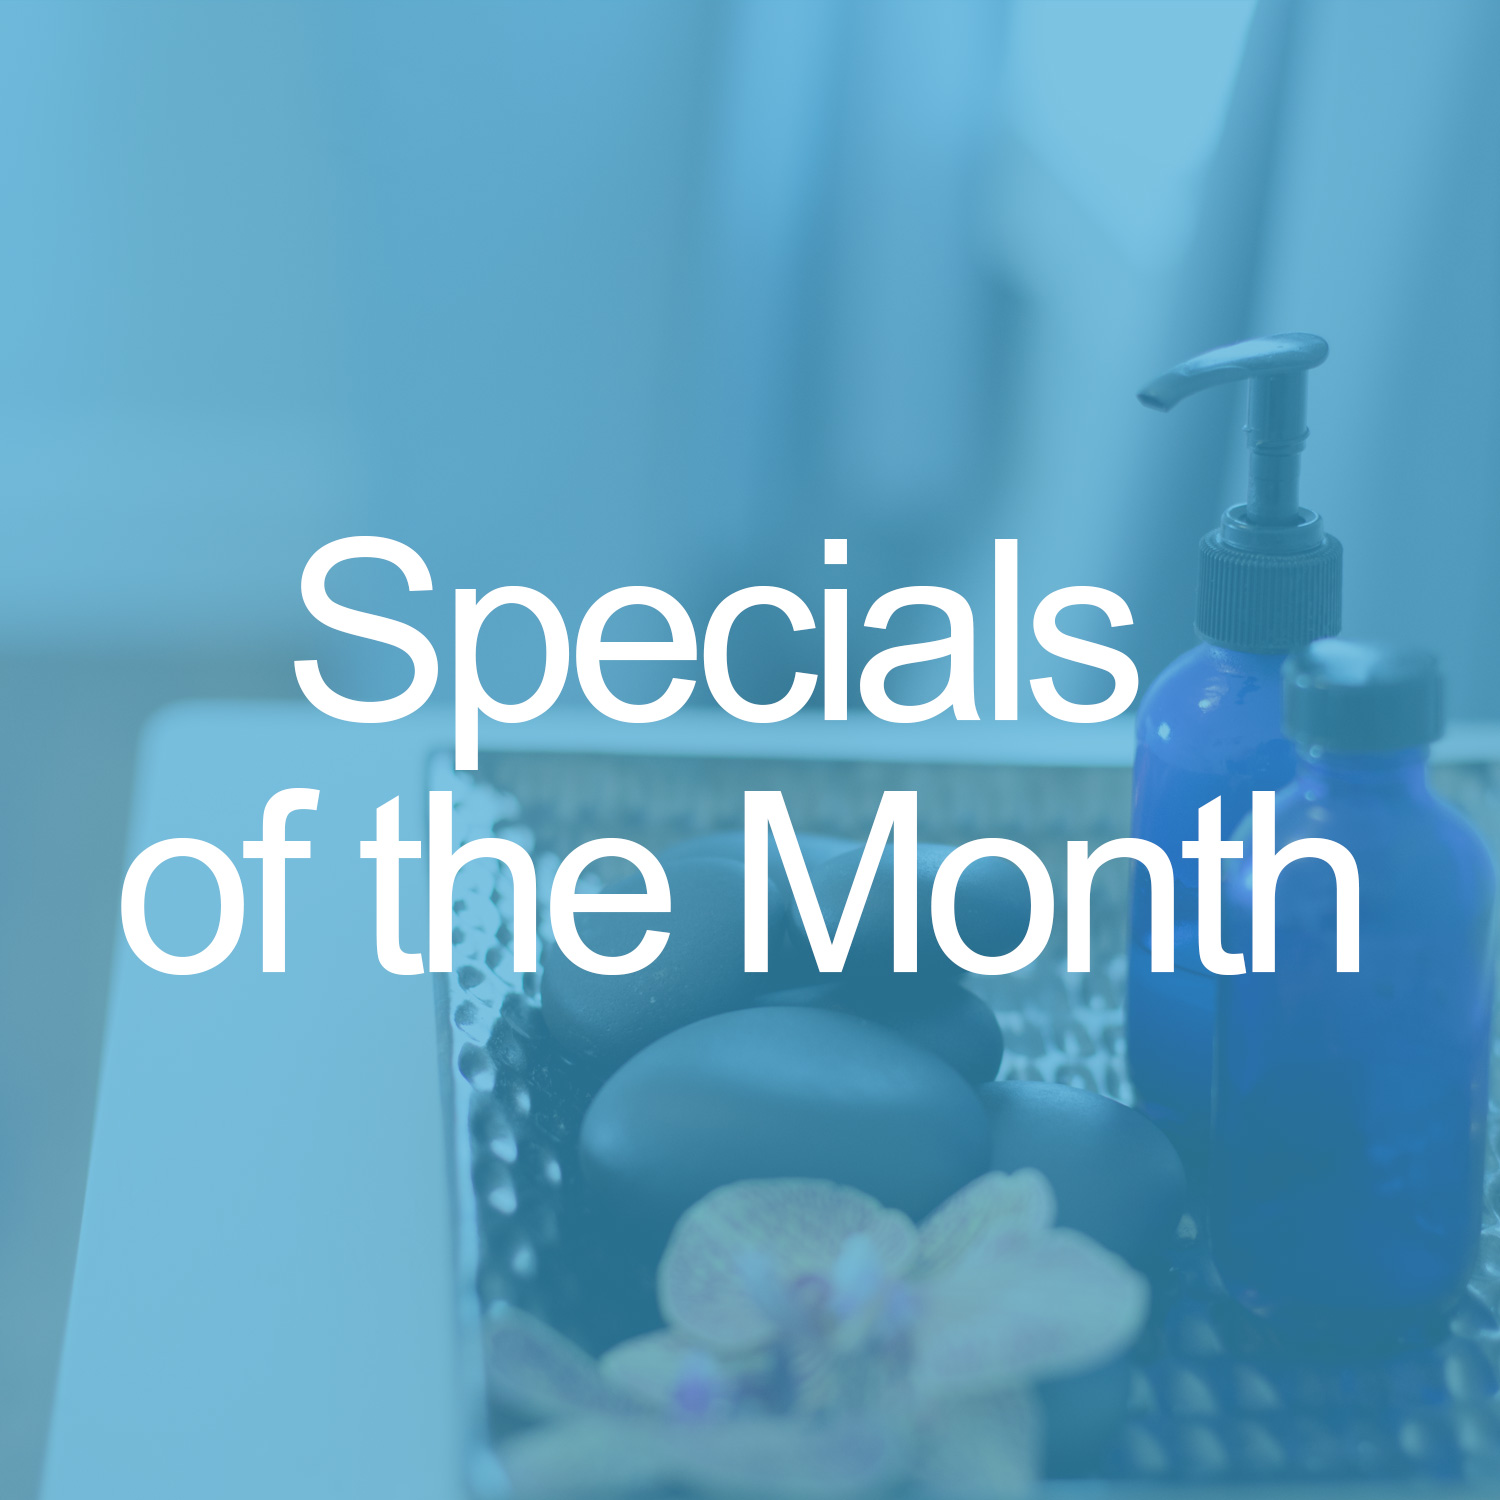 specials of the month